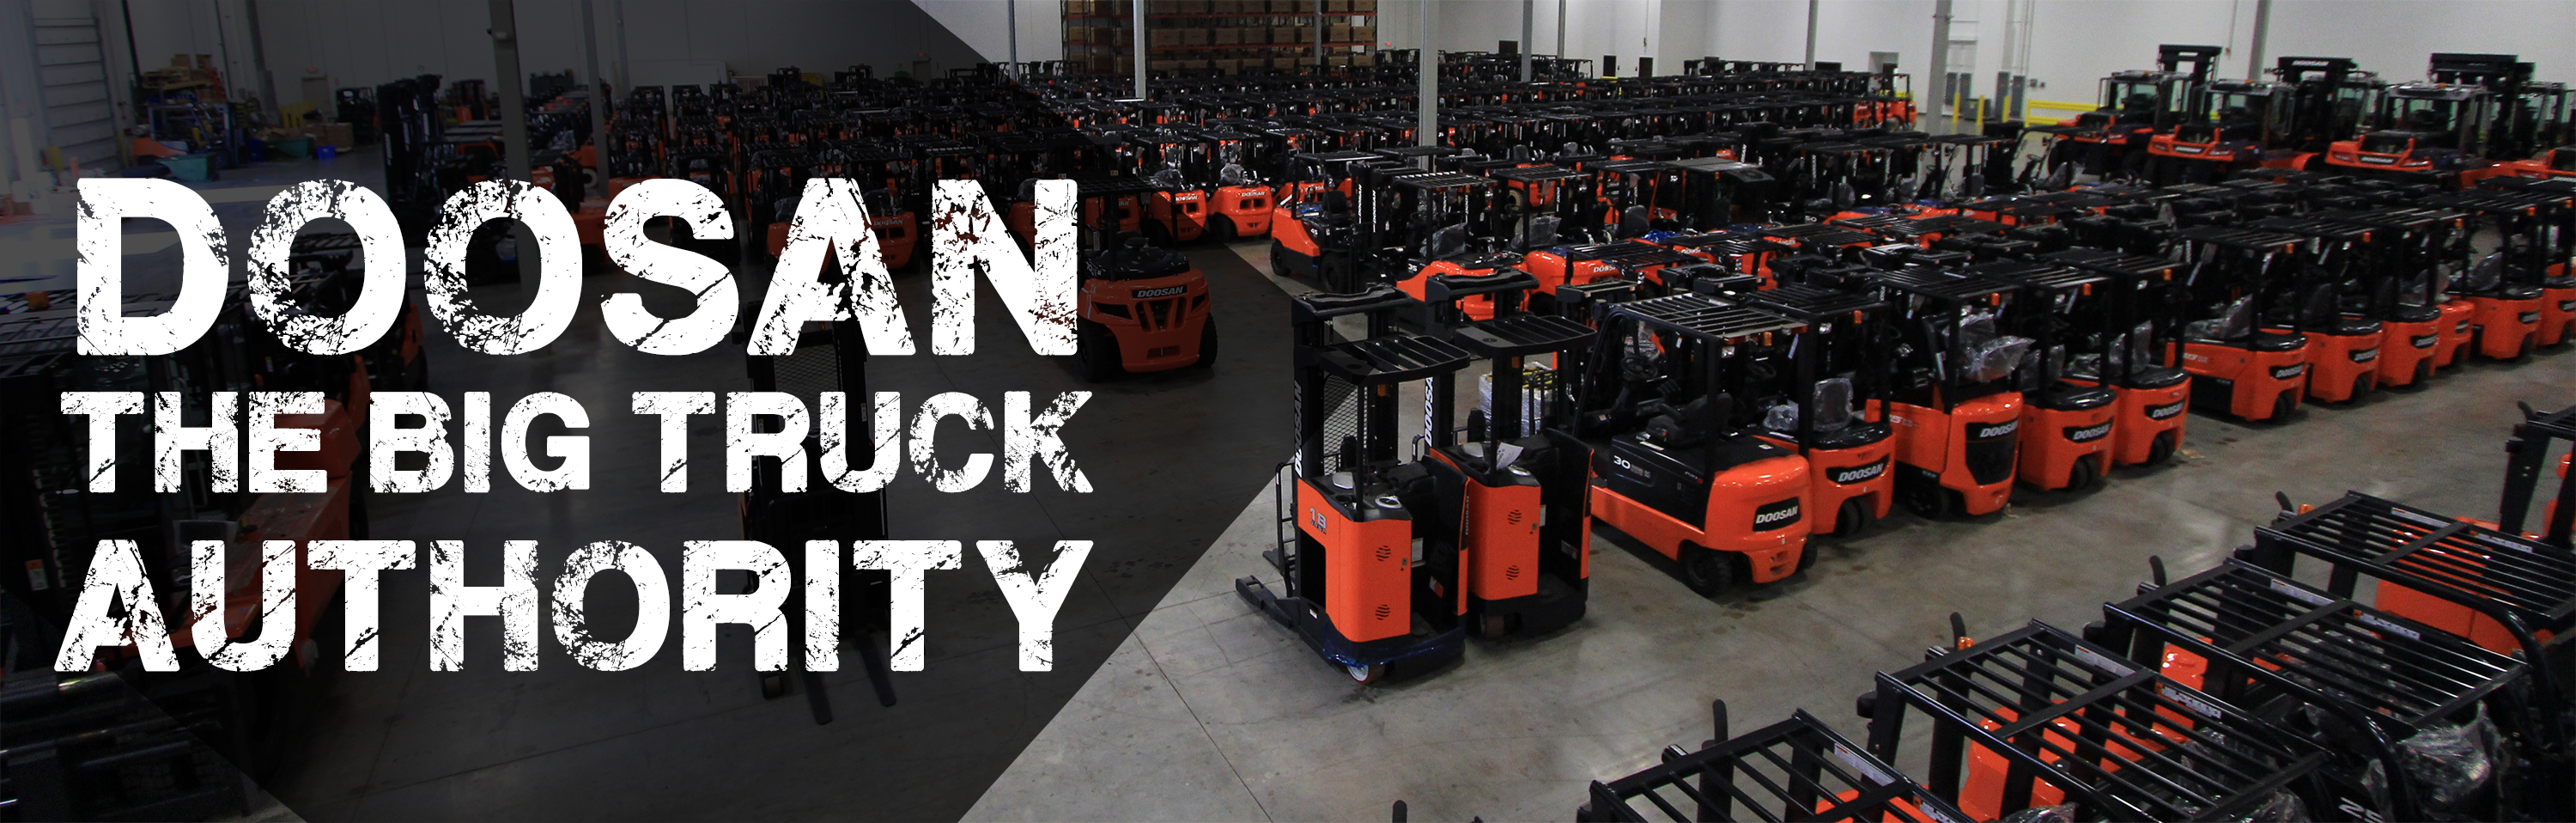 Doosan forklifts in a warehouse